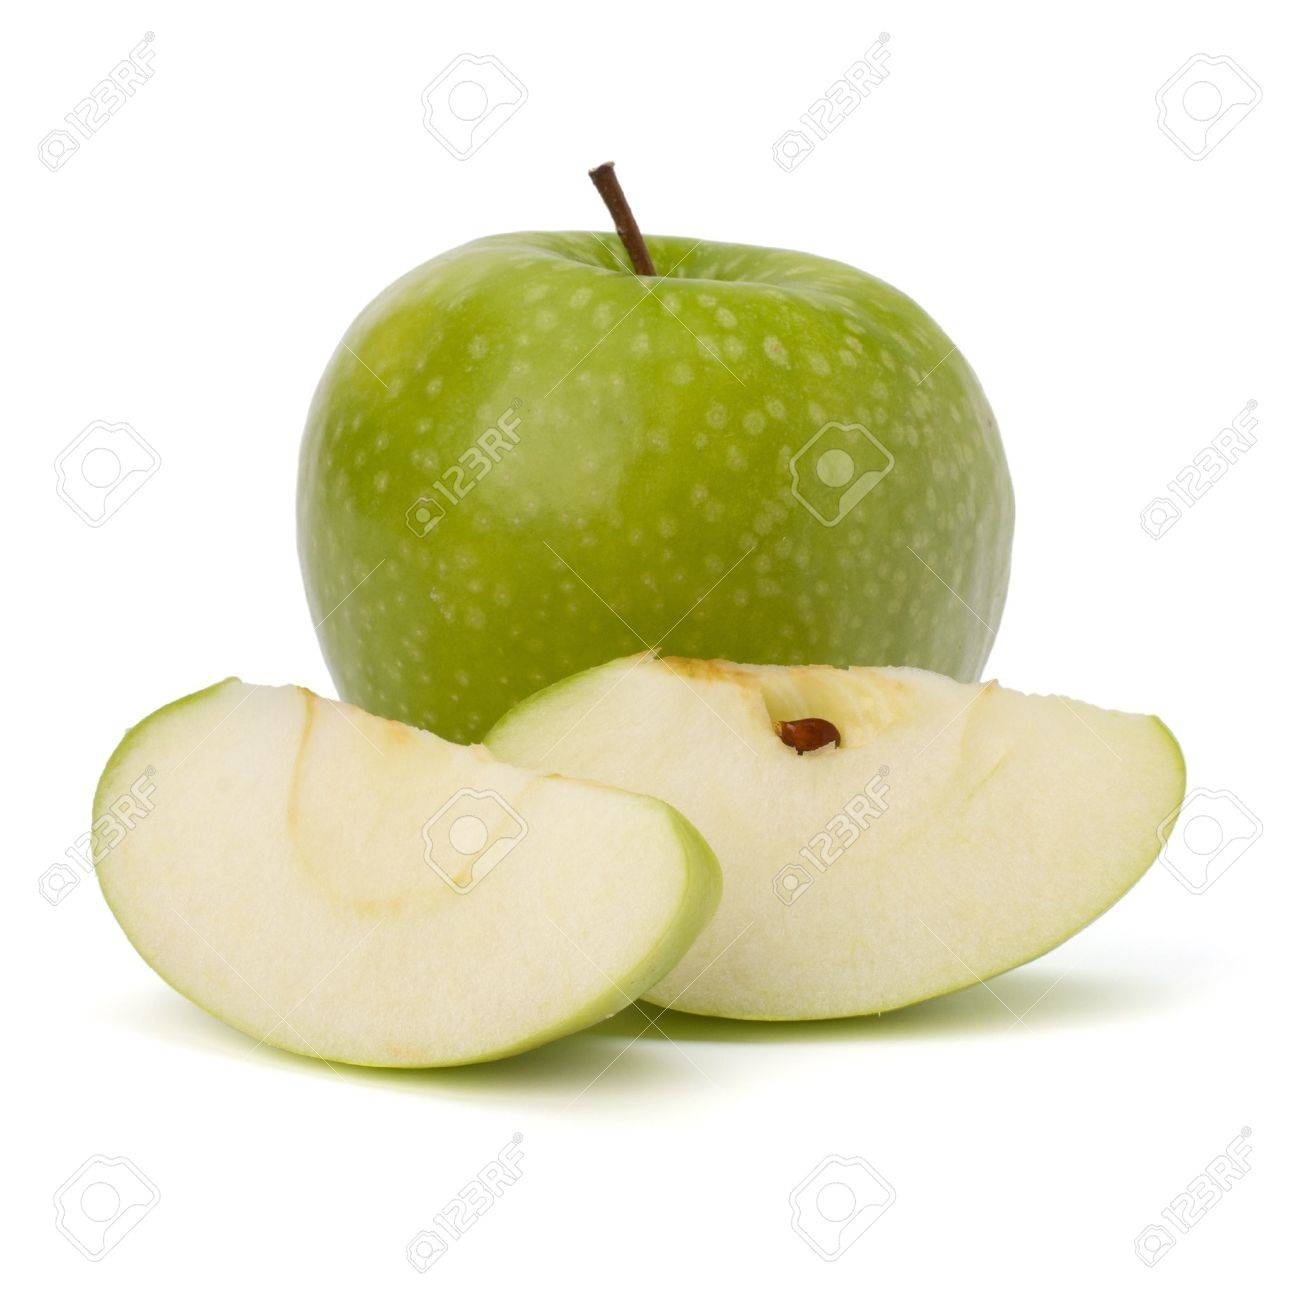 apple isolated on white background Stock Photo - 10406416